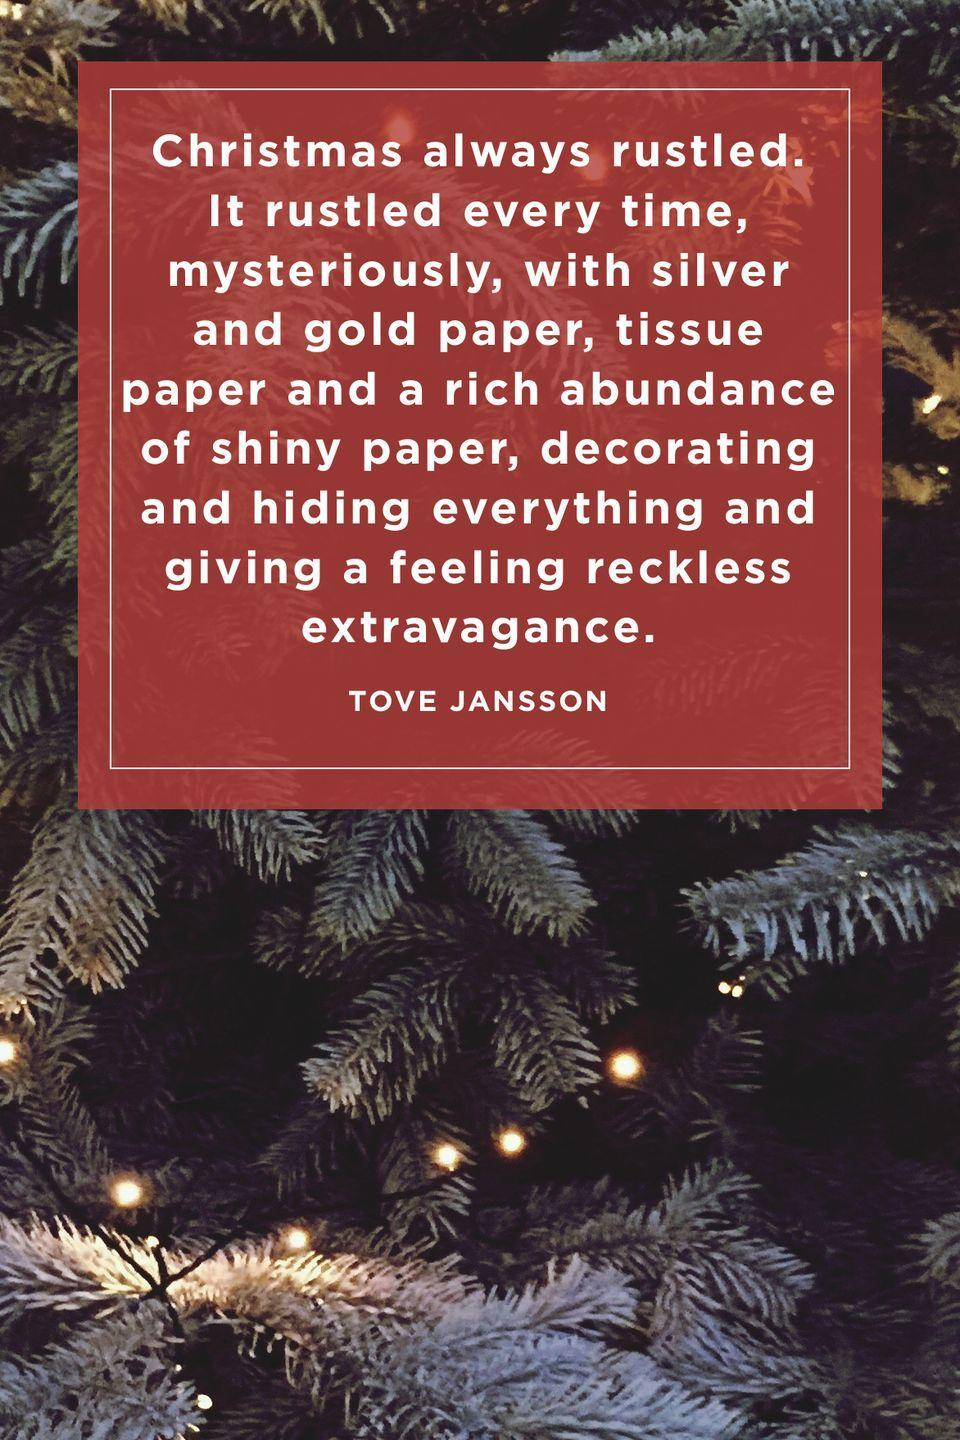 """<p>""""Christmas always rustled. It rustled every time, mysteriously, with silver and gold paper, tissue paper and a rich abundance of shiny paper, decorating and hiding everything and giving a feeling reckless extravagance.""""</p>"""